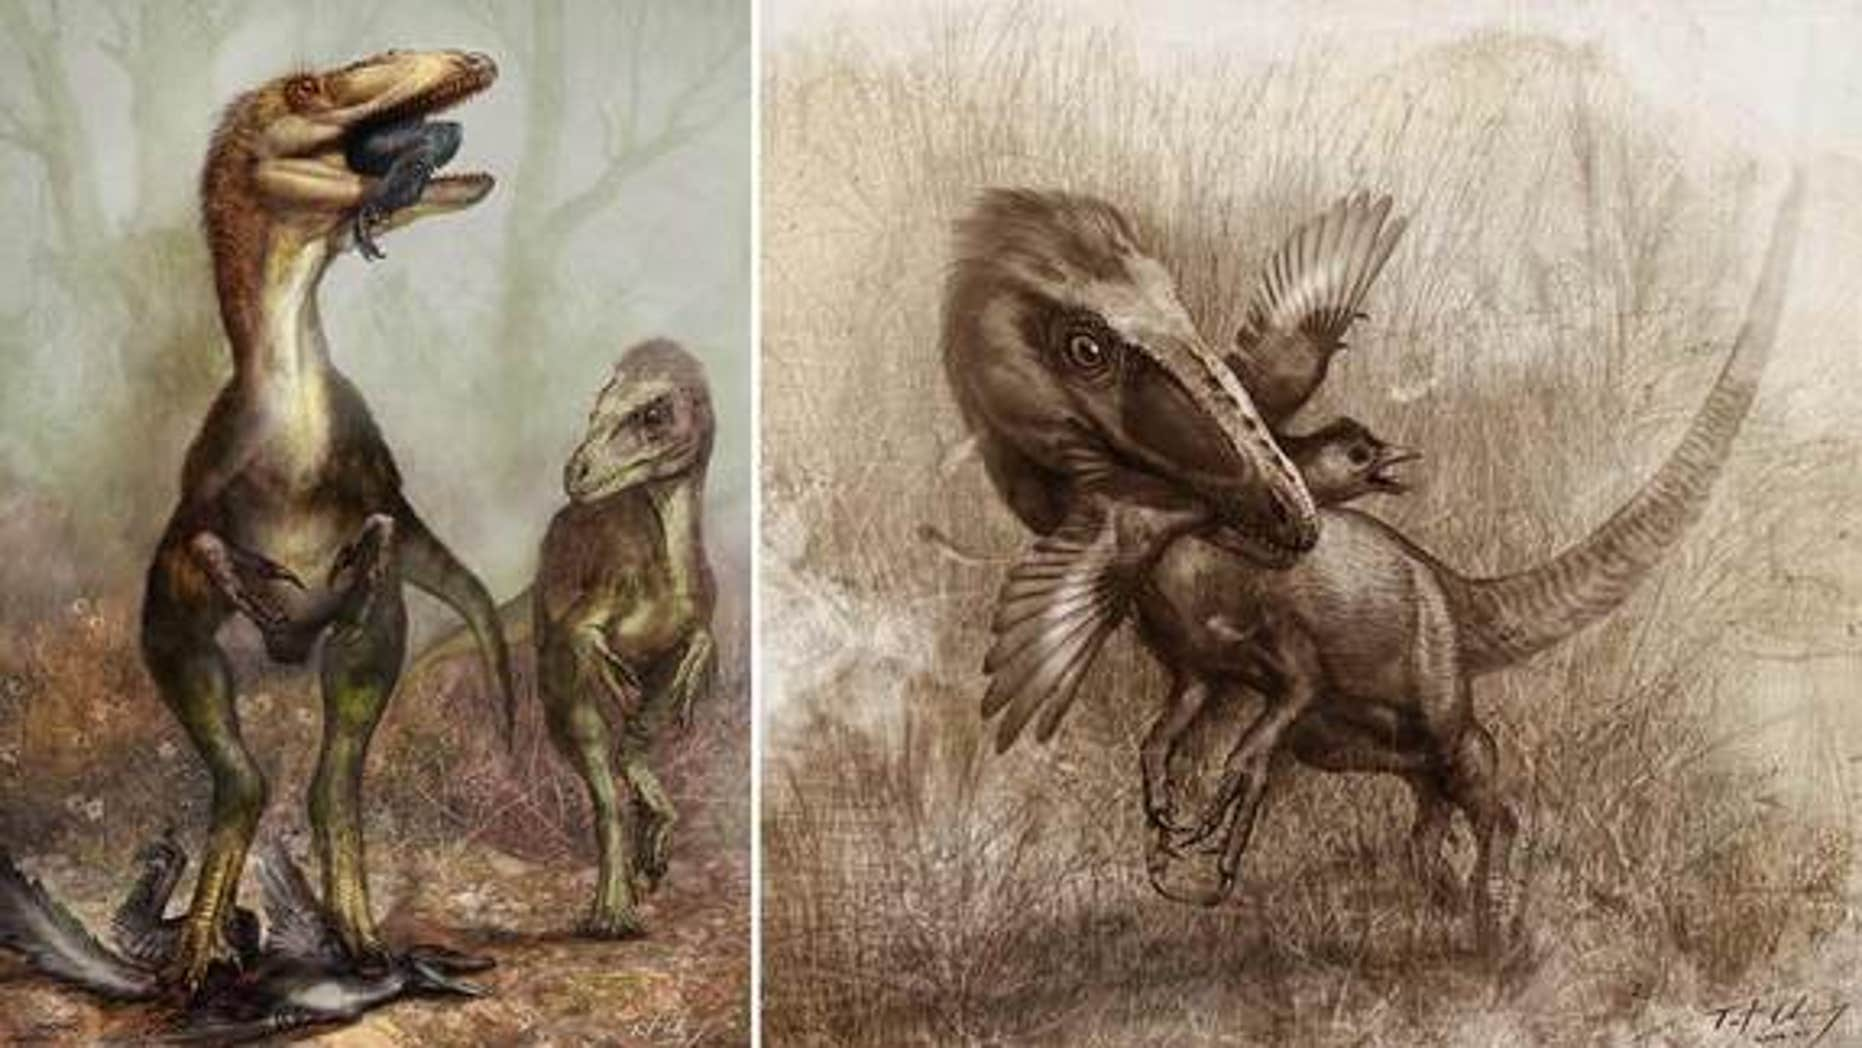 Gut contents of the dinosaur Sinocalliopteryx gigas suggest the predator chowed on cat-size feathered dinosaurs called Sinornithosaurus (illustrated in left panel), as well as crow-size birds known as Confuciusornis (right).